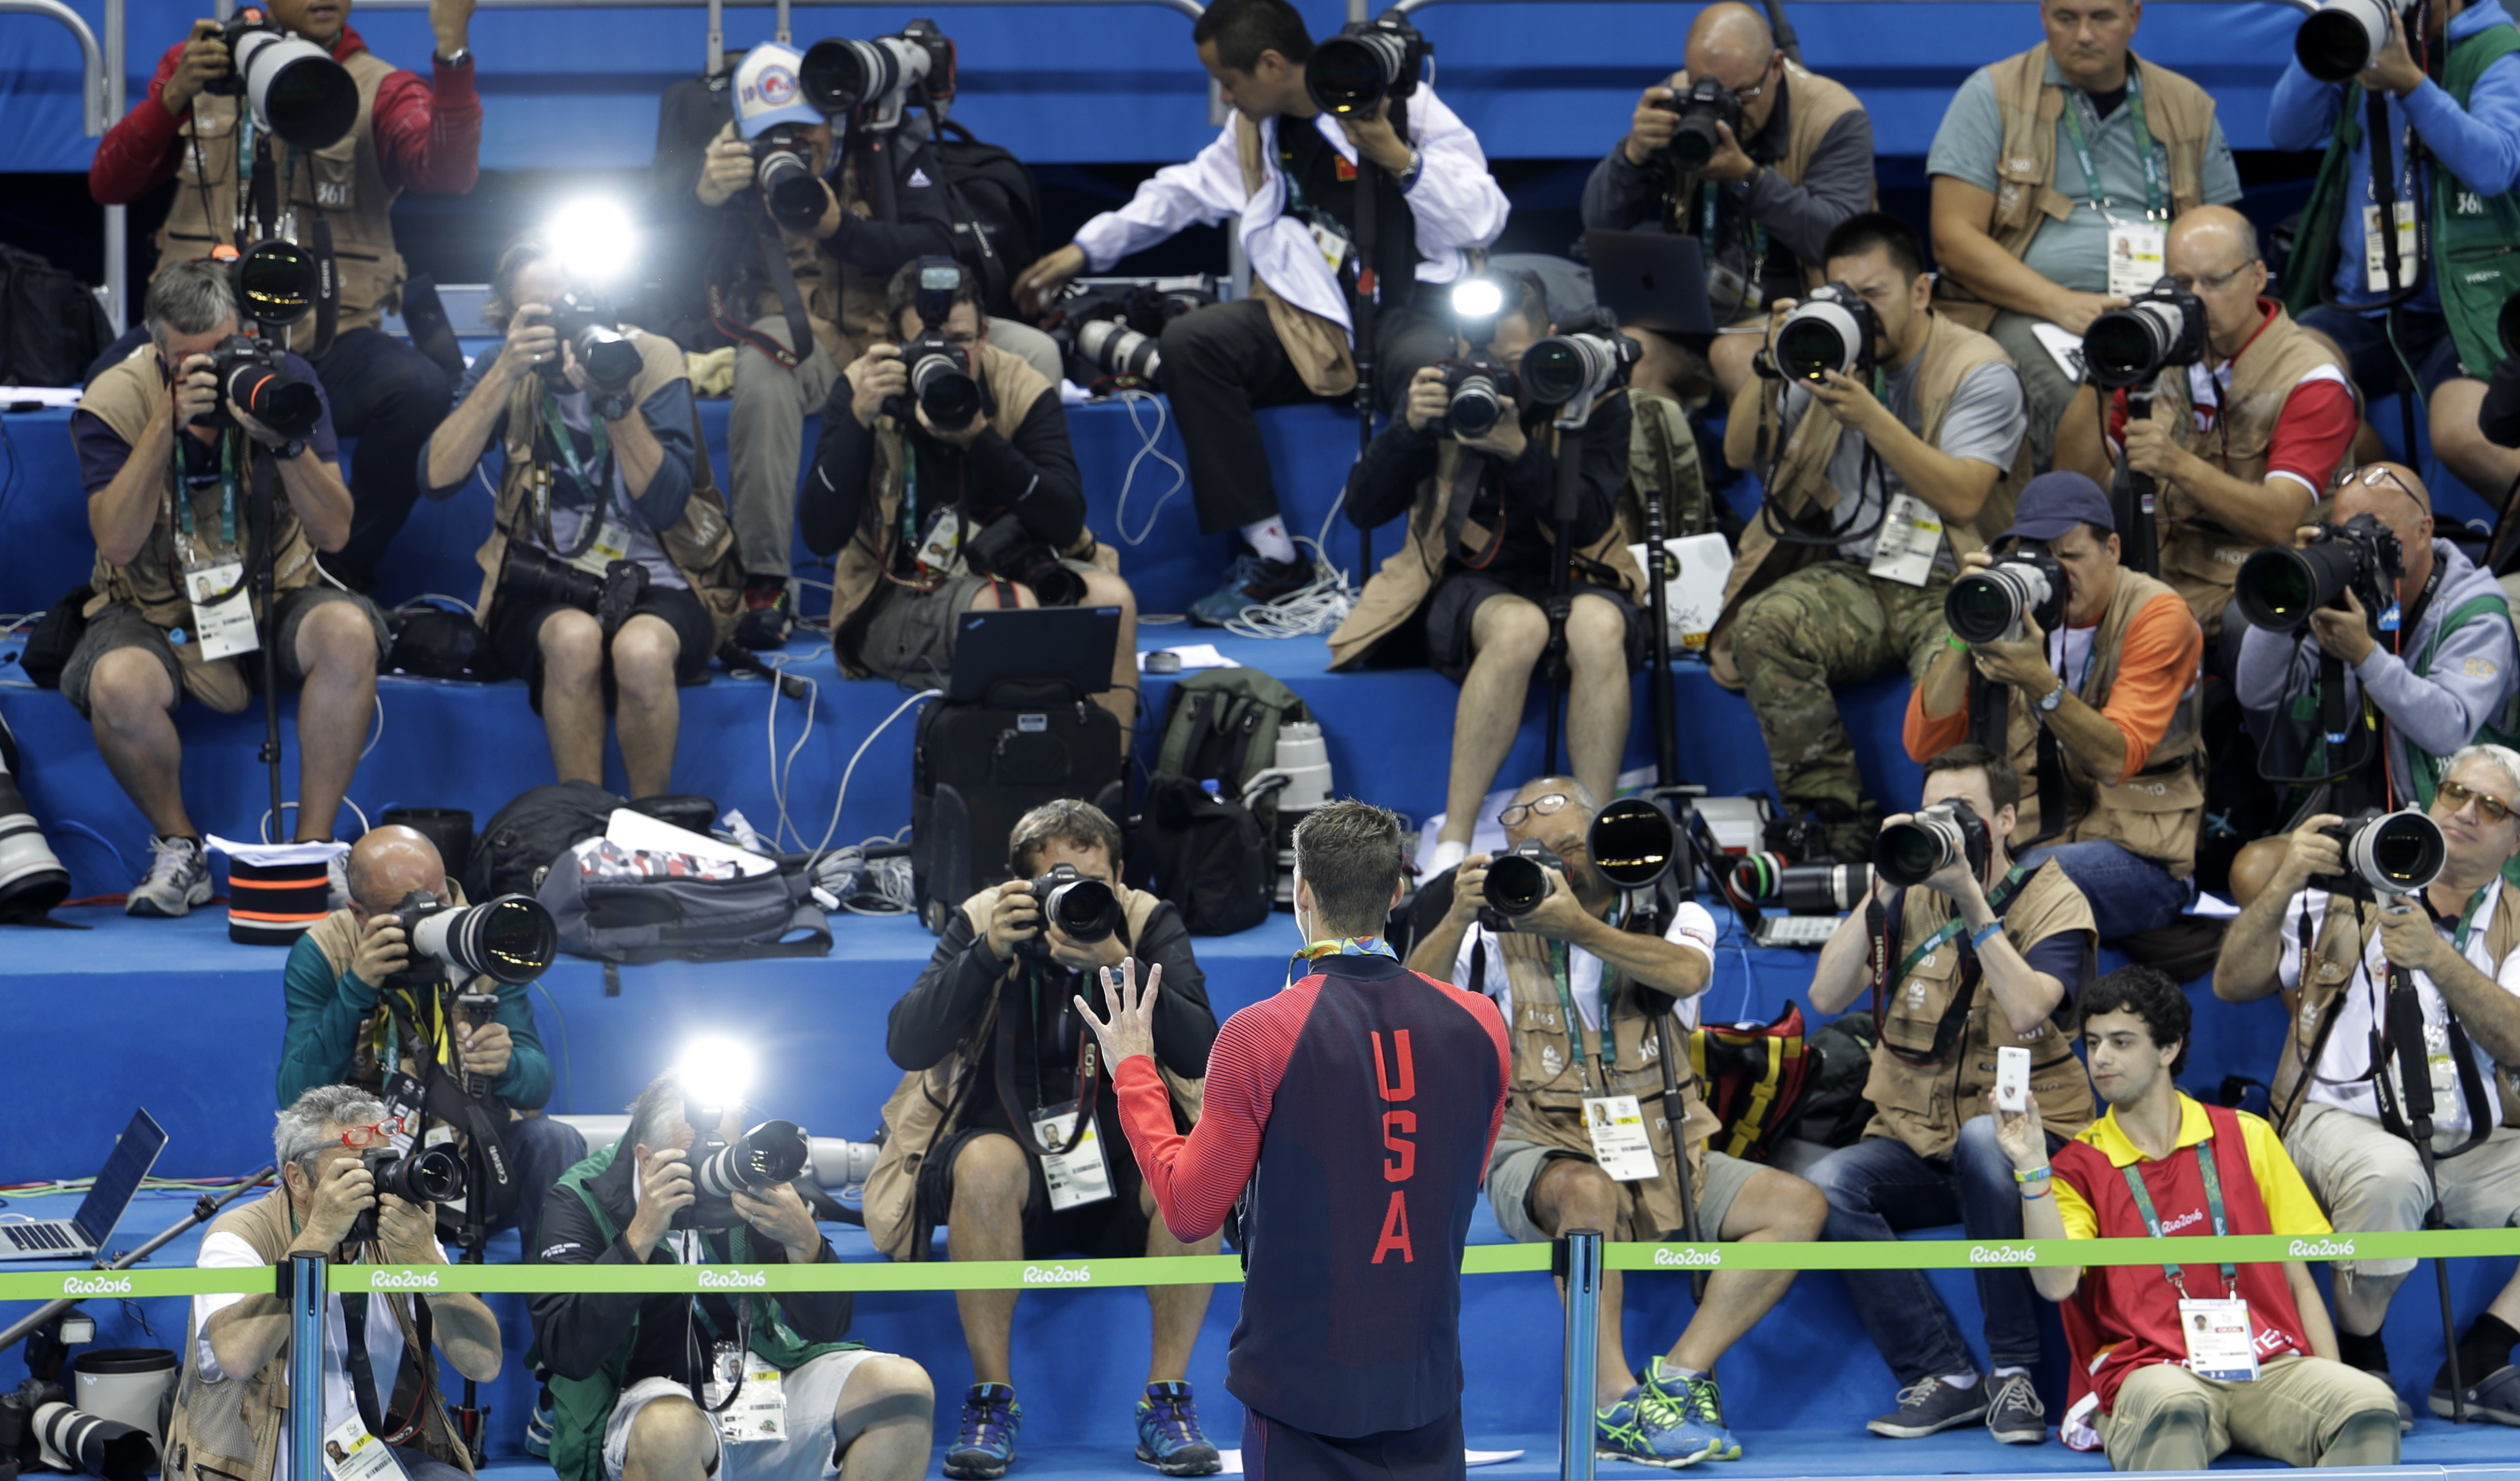 United States' Michael Phelps shows his gold medal for the men's 200-meter individual medley to the media during the swimming competitions at the 2016 Summer Olympics, Thursday, Aug. 11, 2016, in Rio de Janeiro, Brazil. (AP Photo/Natacha Pisarenko)